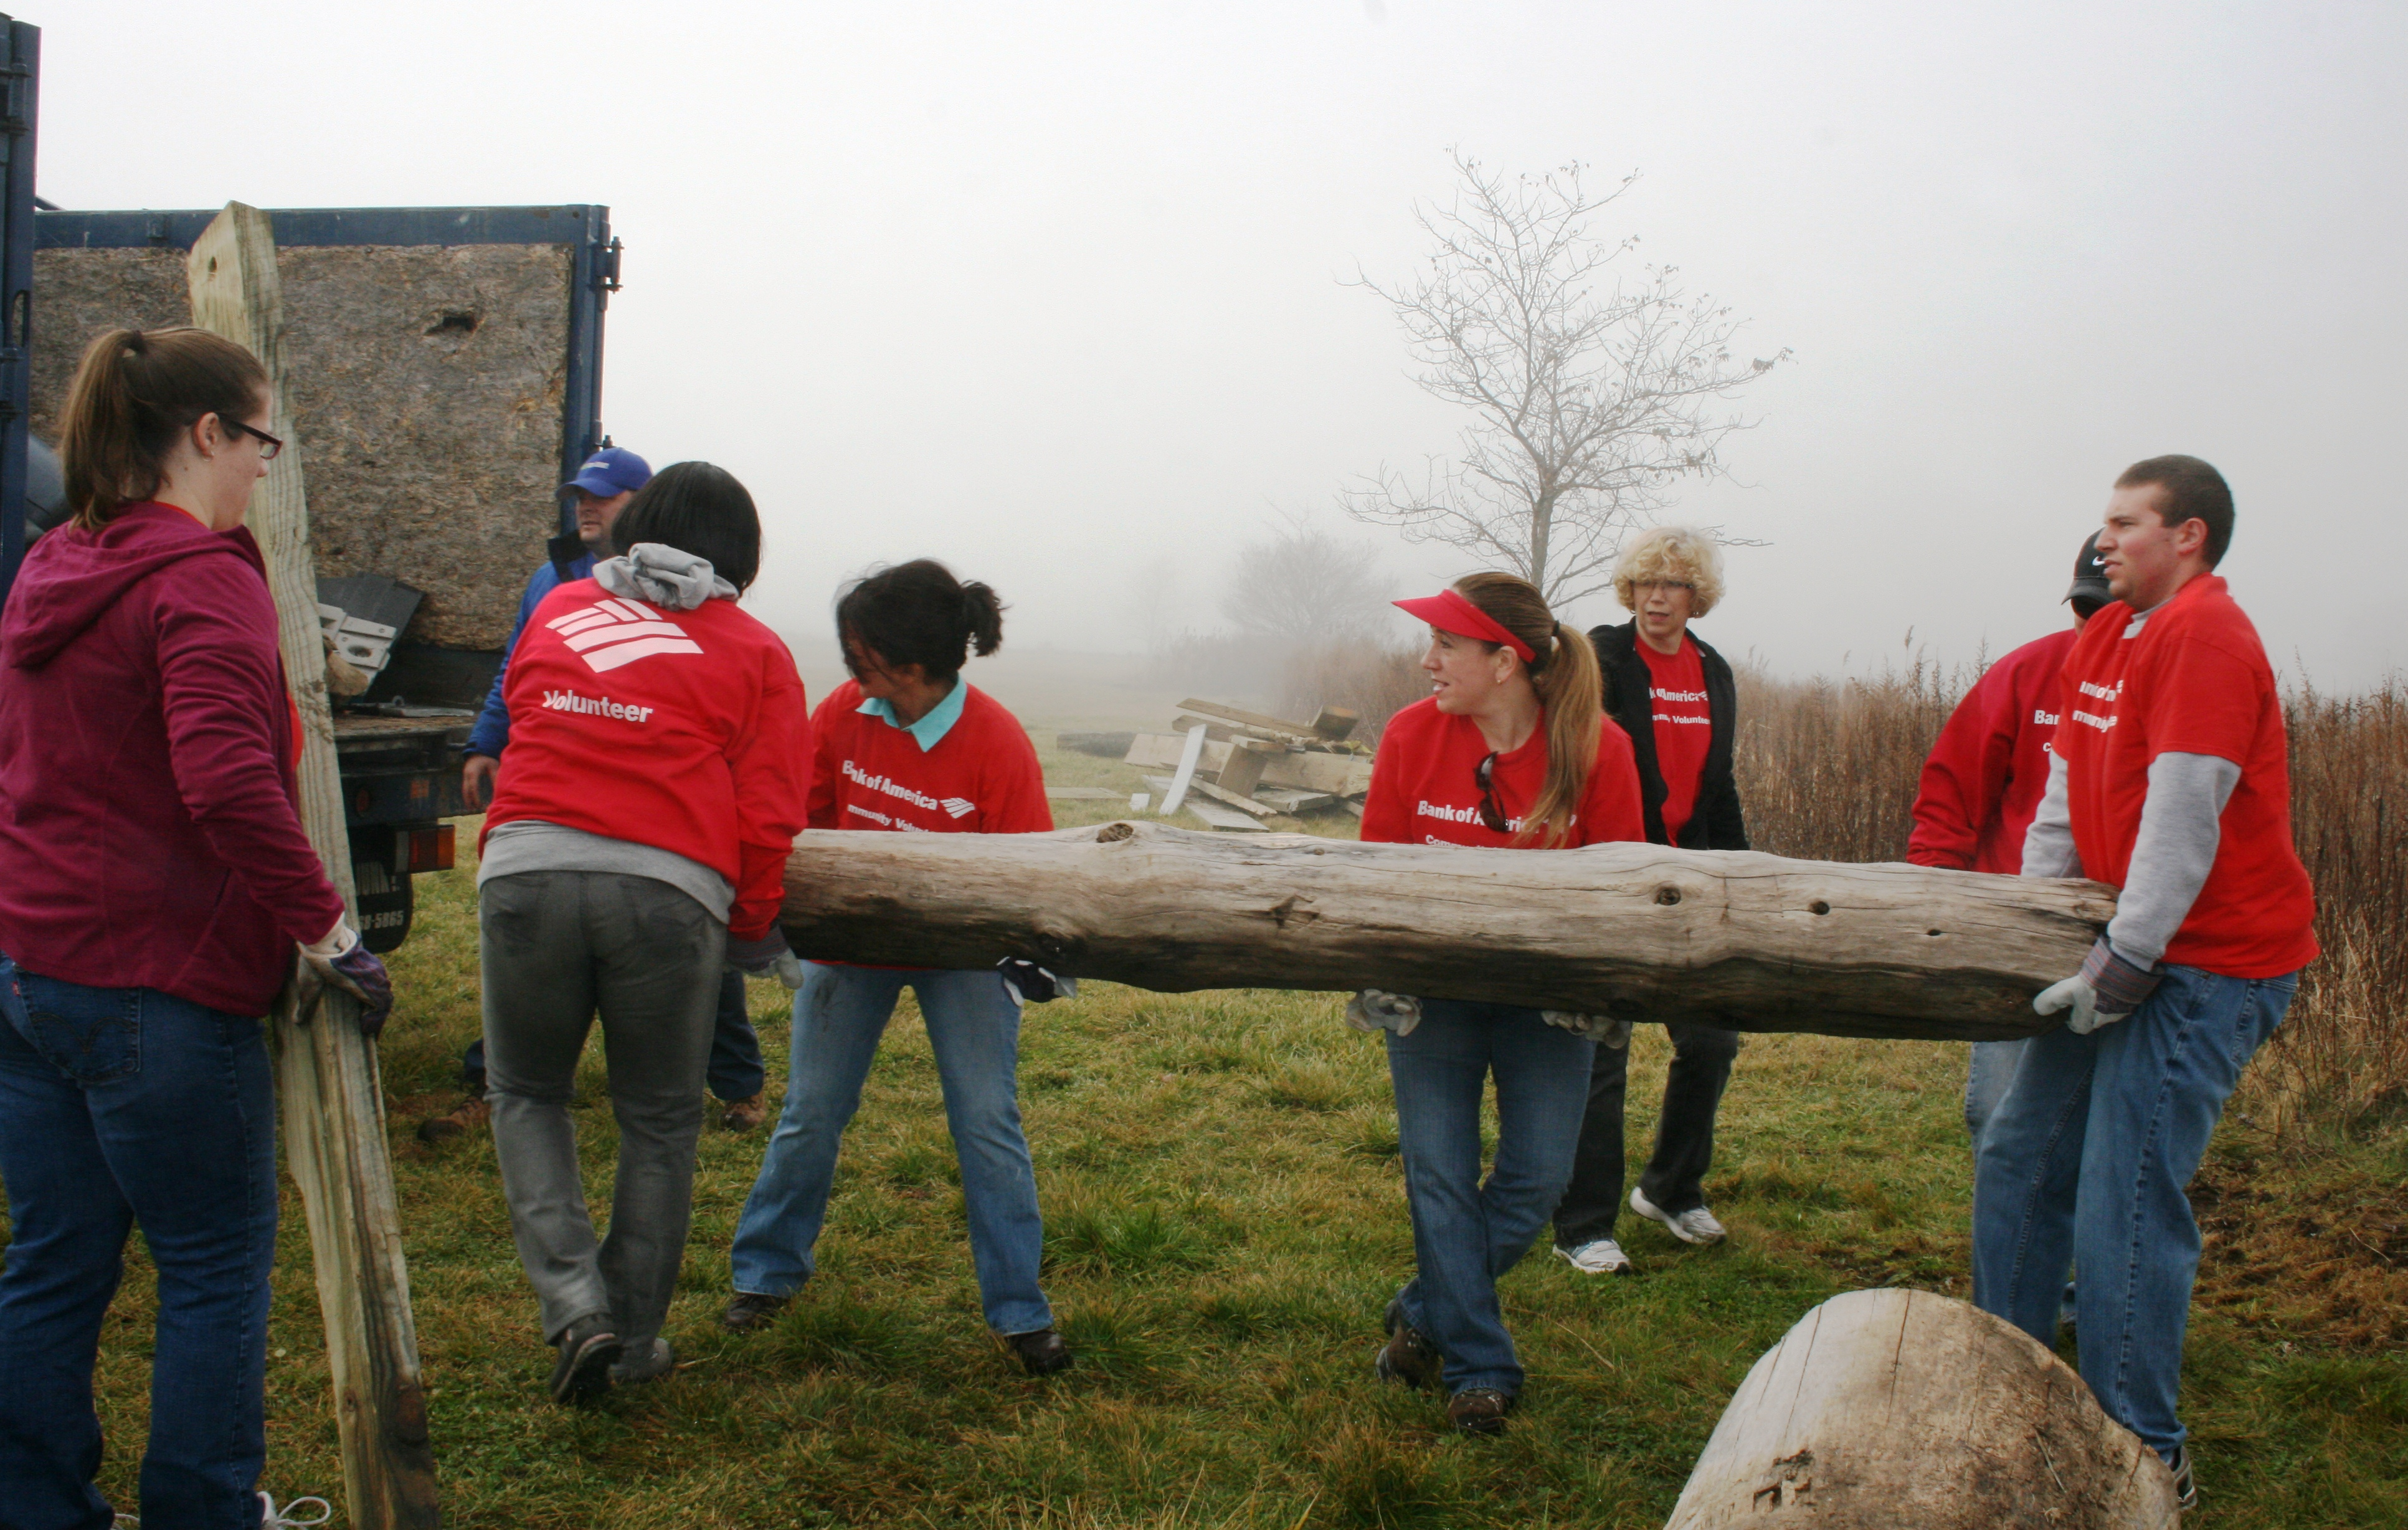 Bank of America volunteers removing debris from Silver Sands after Hurricane Sandy